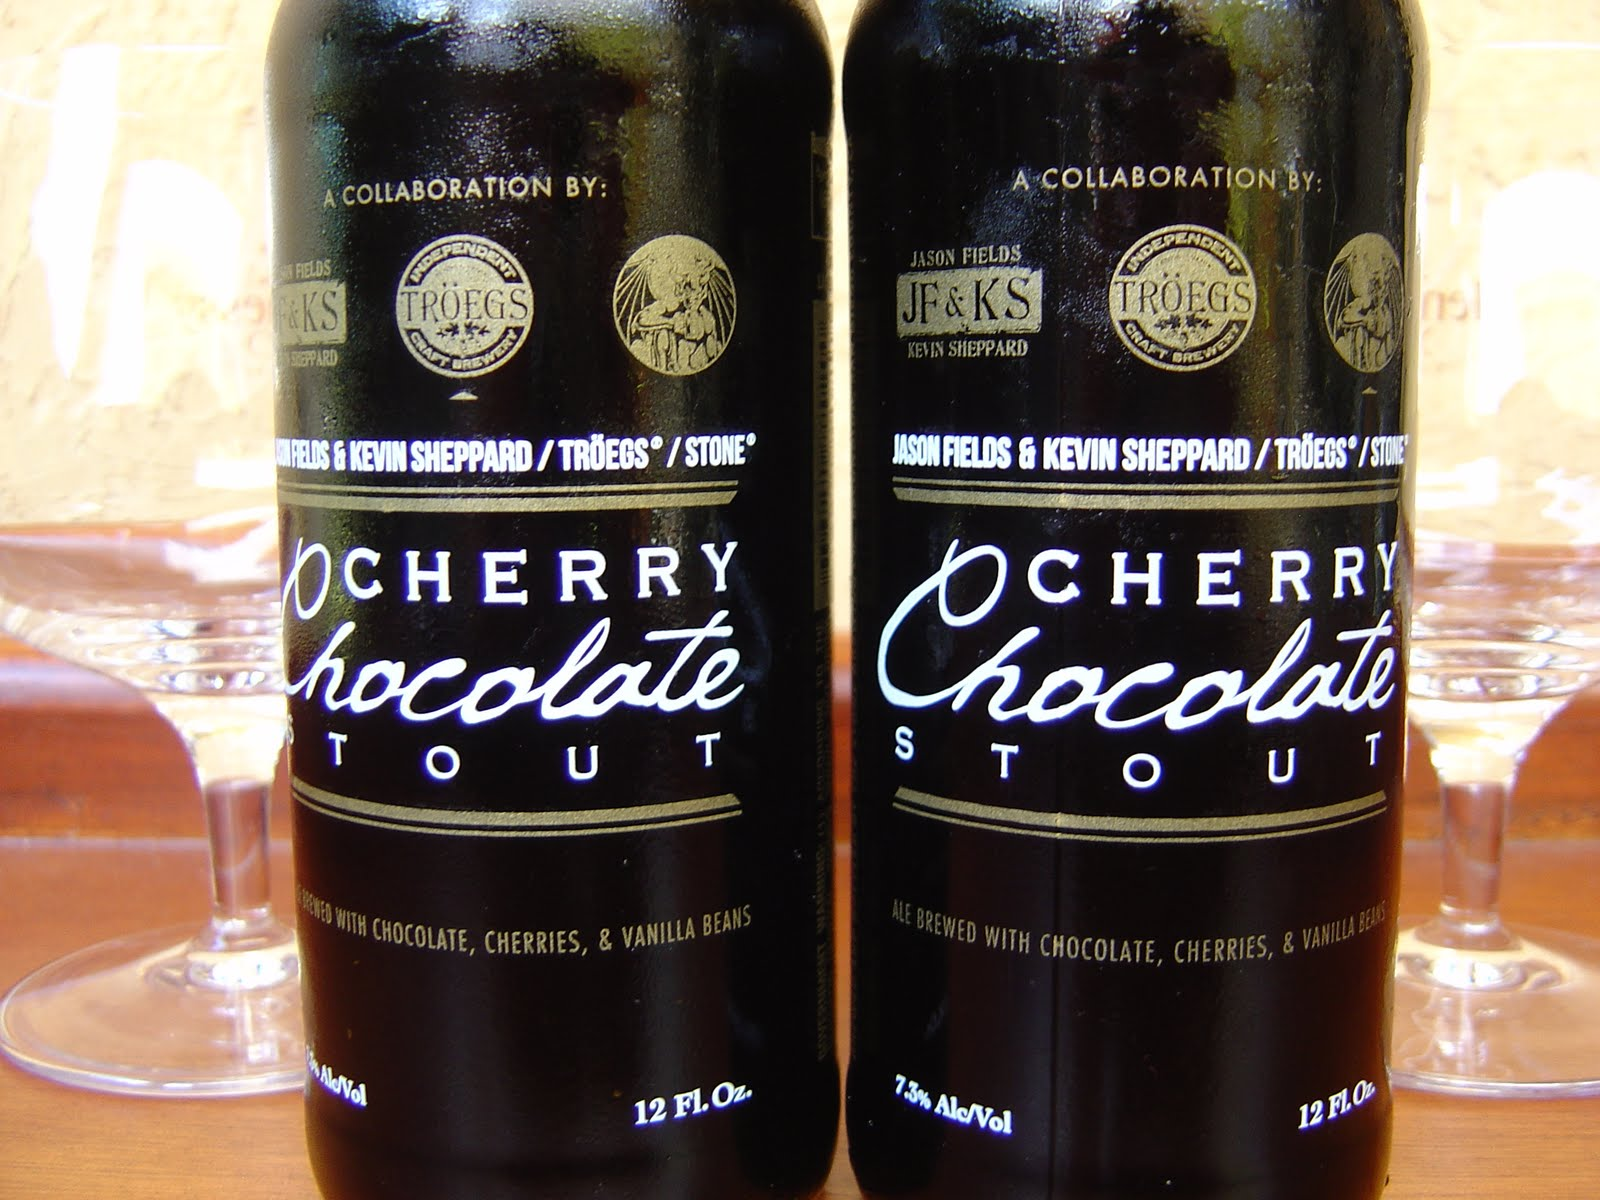 Daily Beer Review The Great Frozen Cherry Chocolate Stout